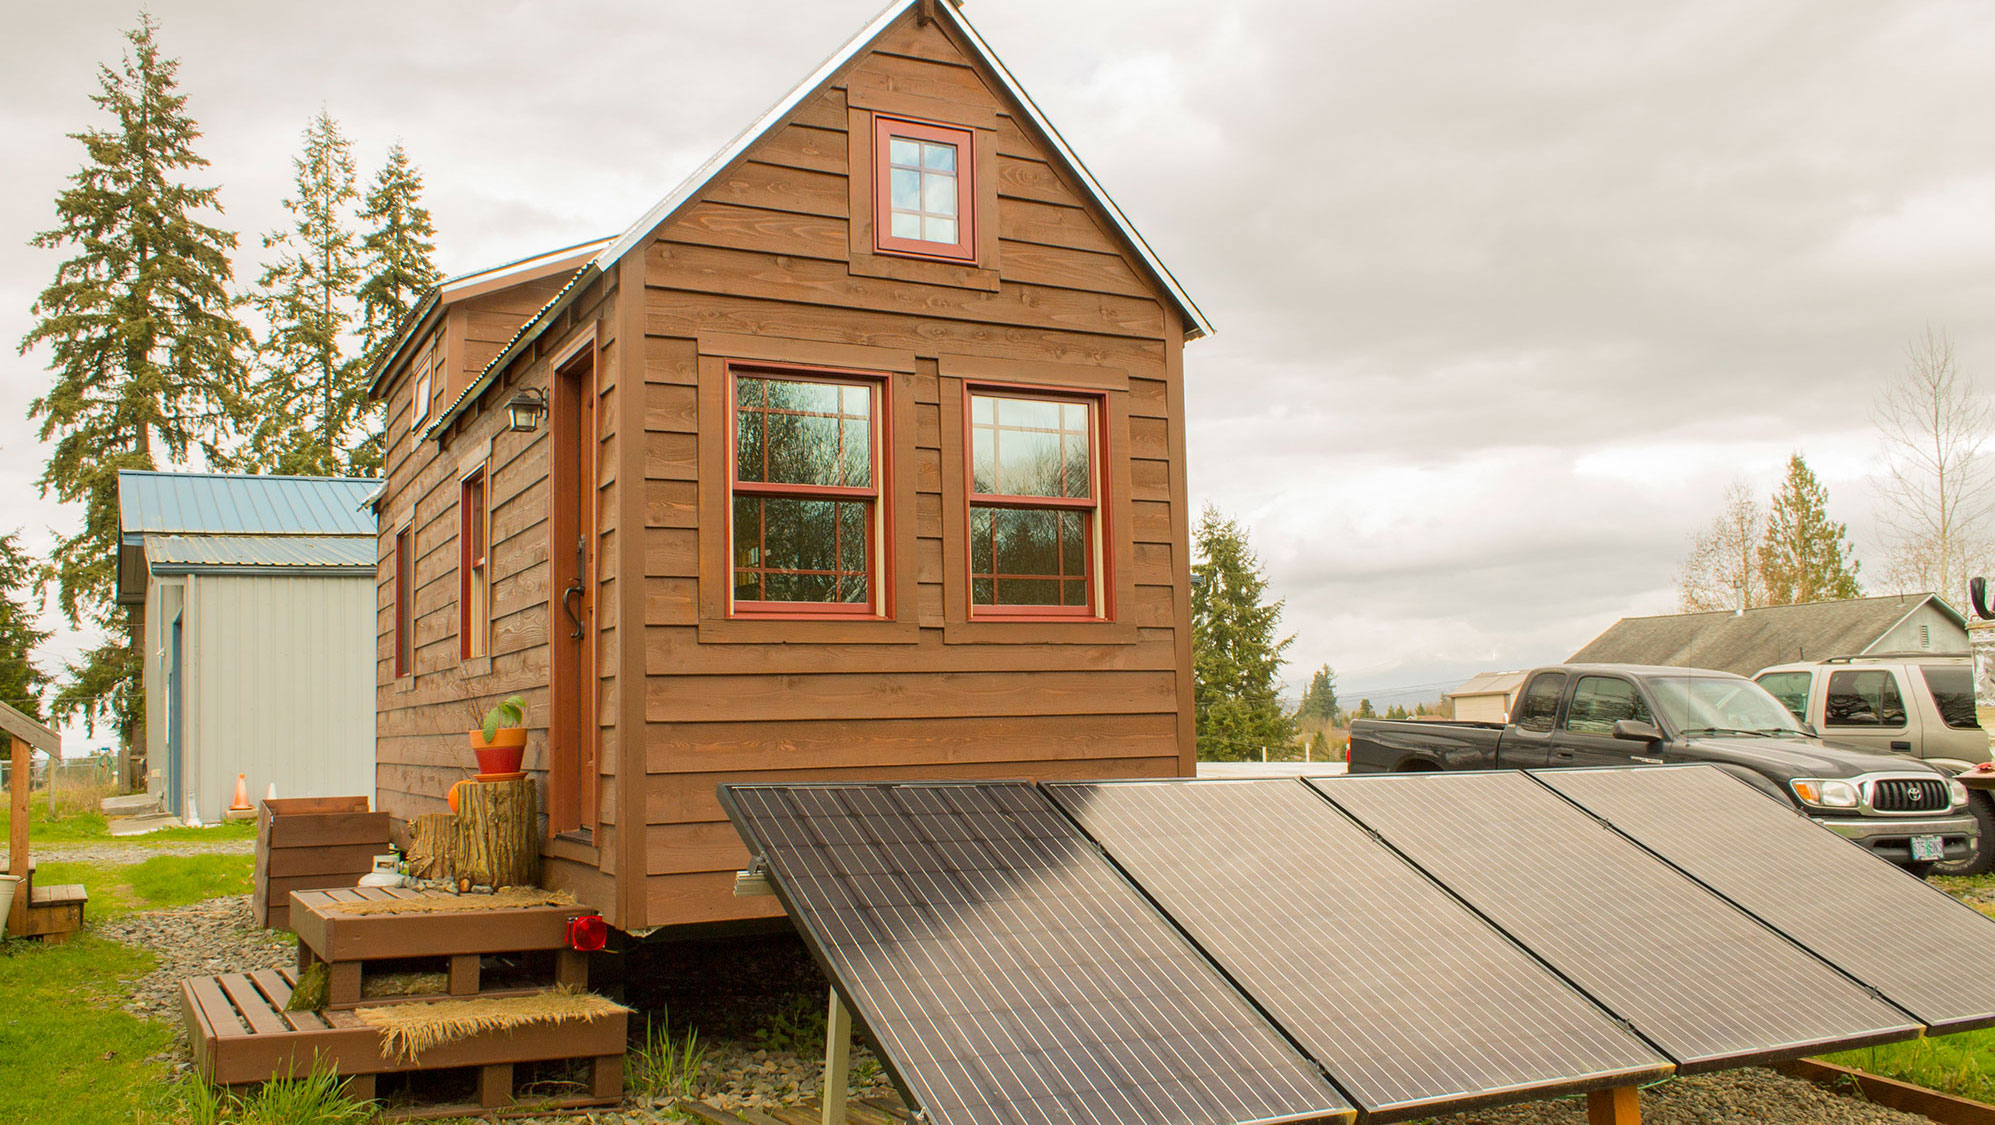 The couple that quit renting to live in a tiny house / Boing Boing